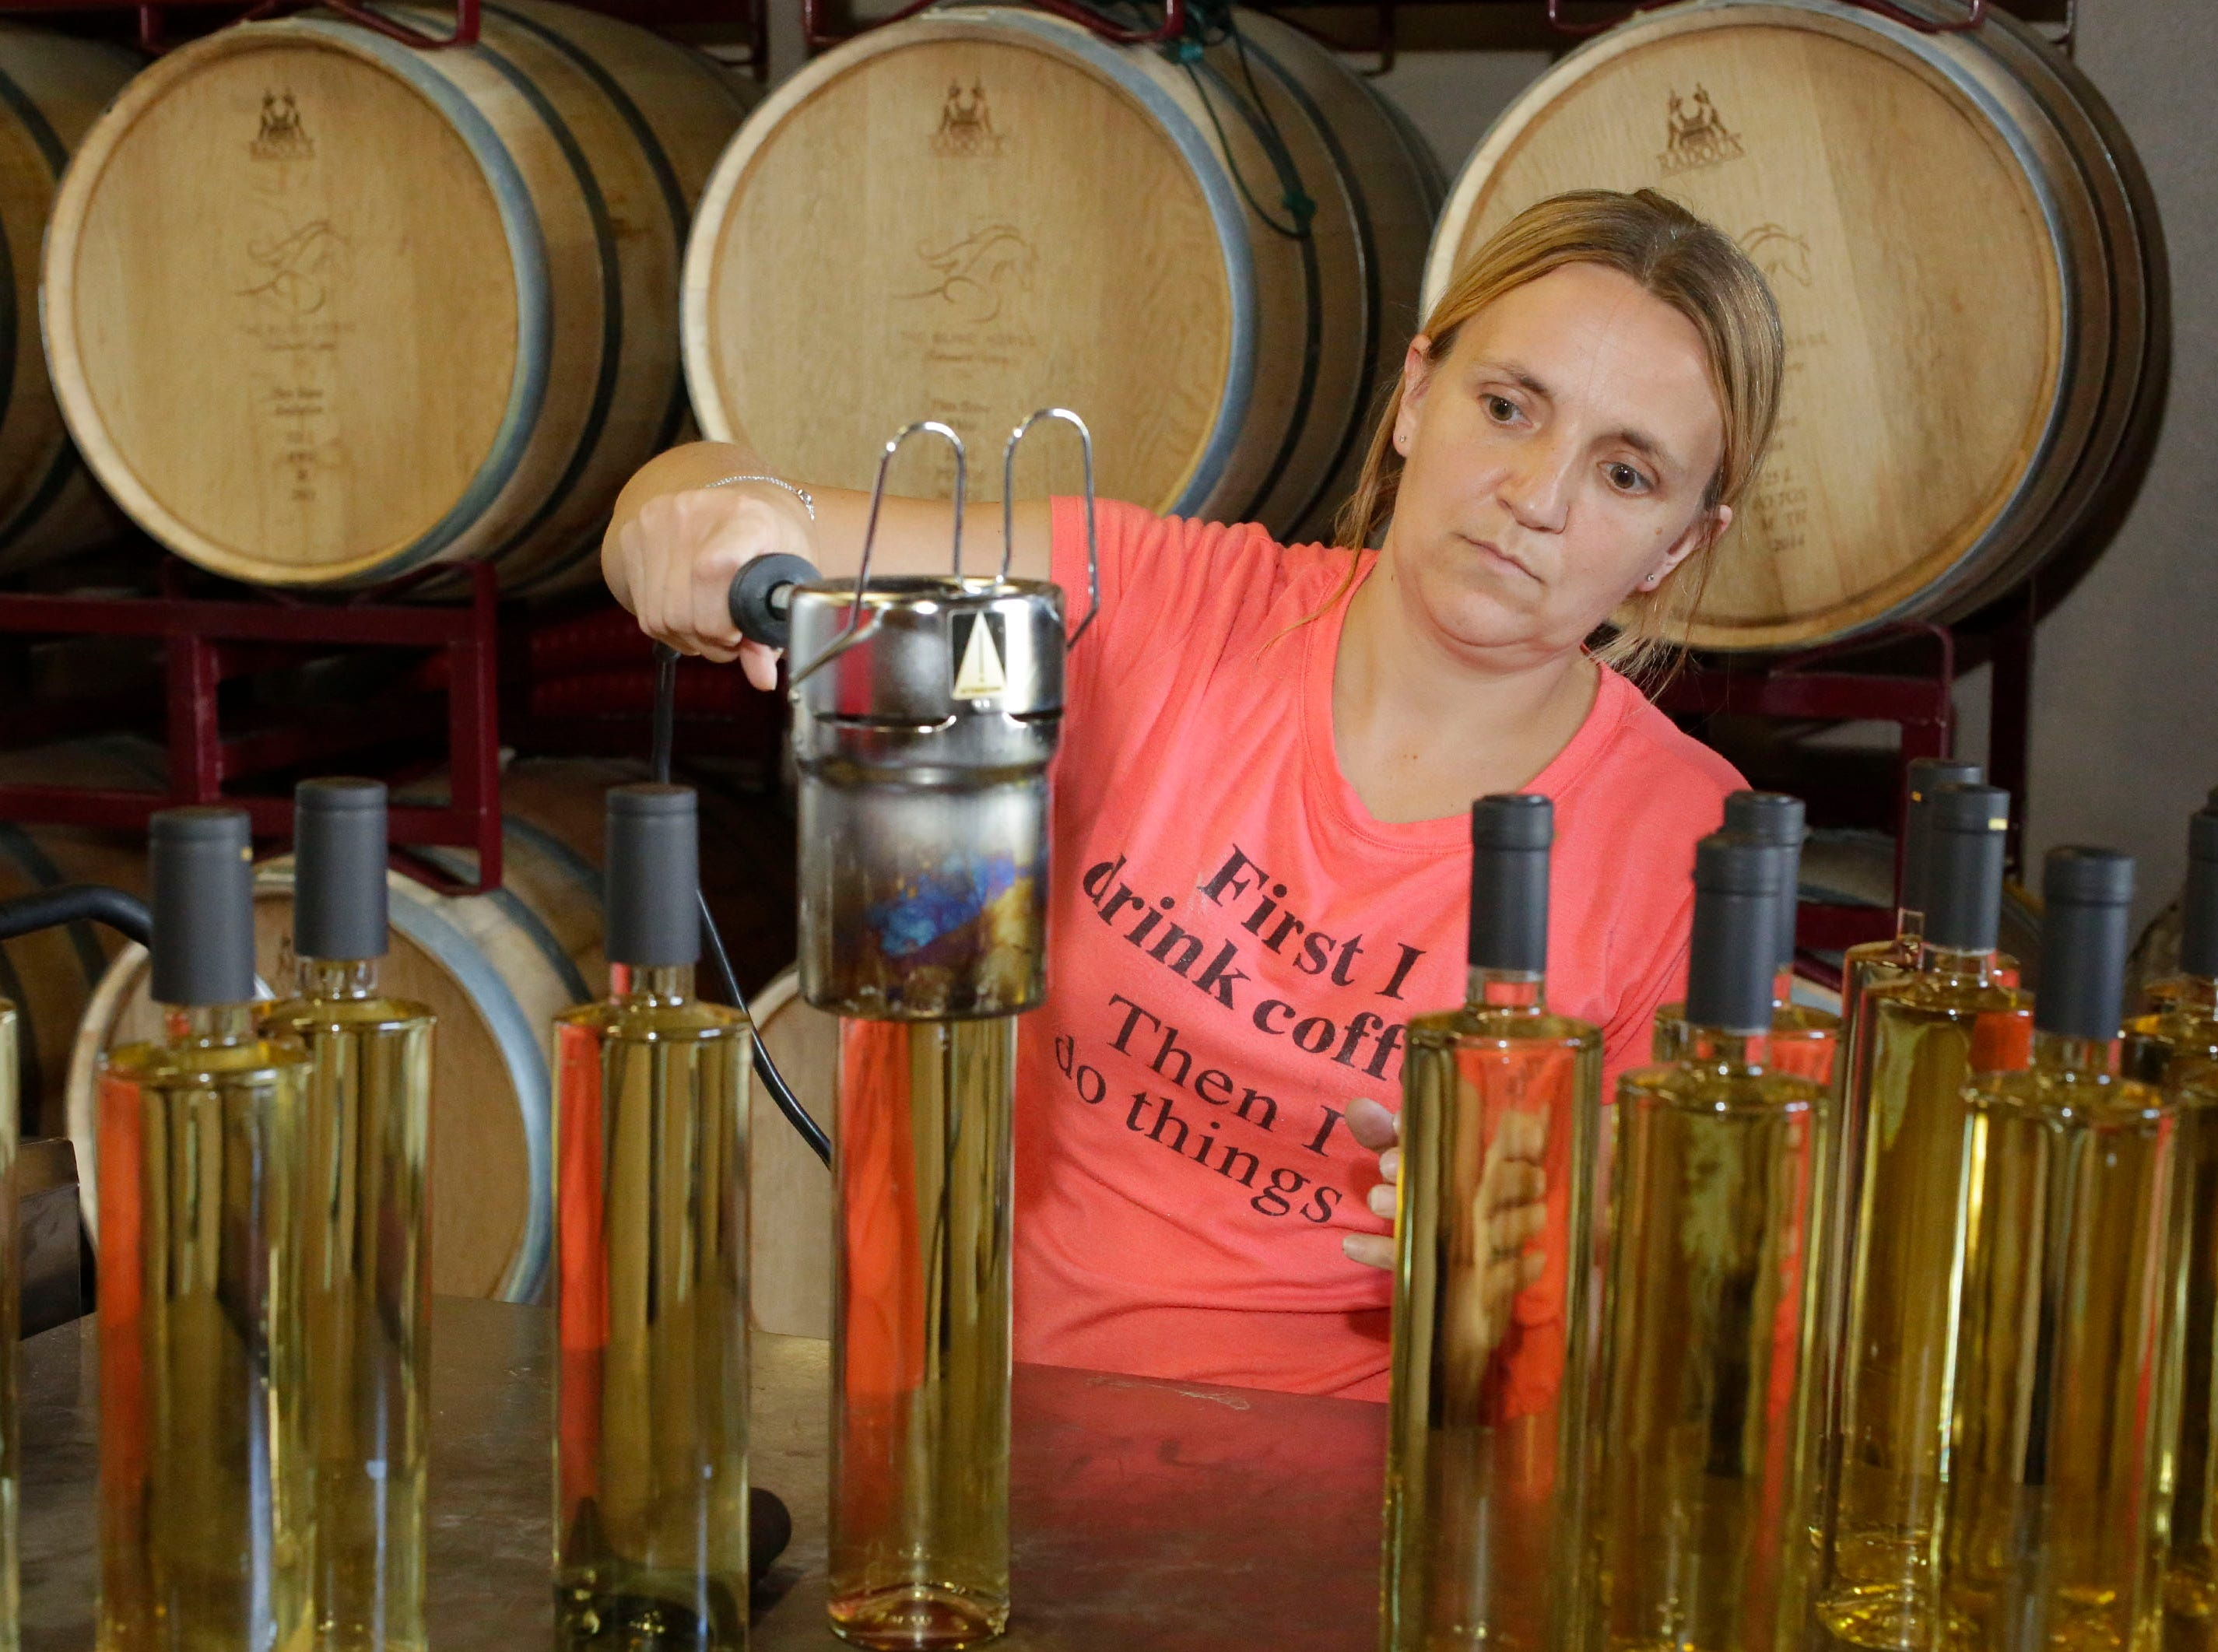 Laura Champeau-Byrd, of South Milwaukee, Wis., works on bottling Chardonnay reserve wine at The Blind Horse restaurant and winery, Thursday, September 13, 2018, in Kohler, Wis.